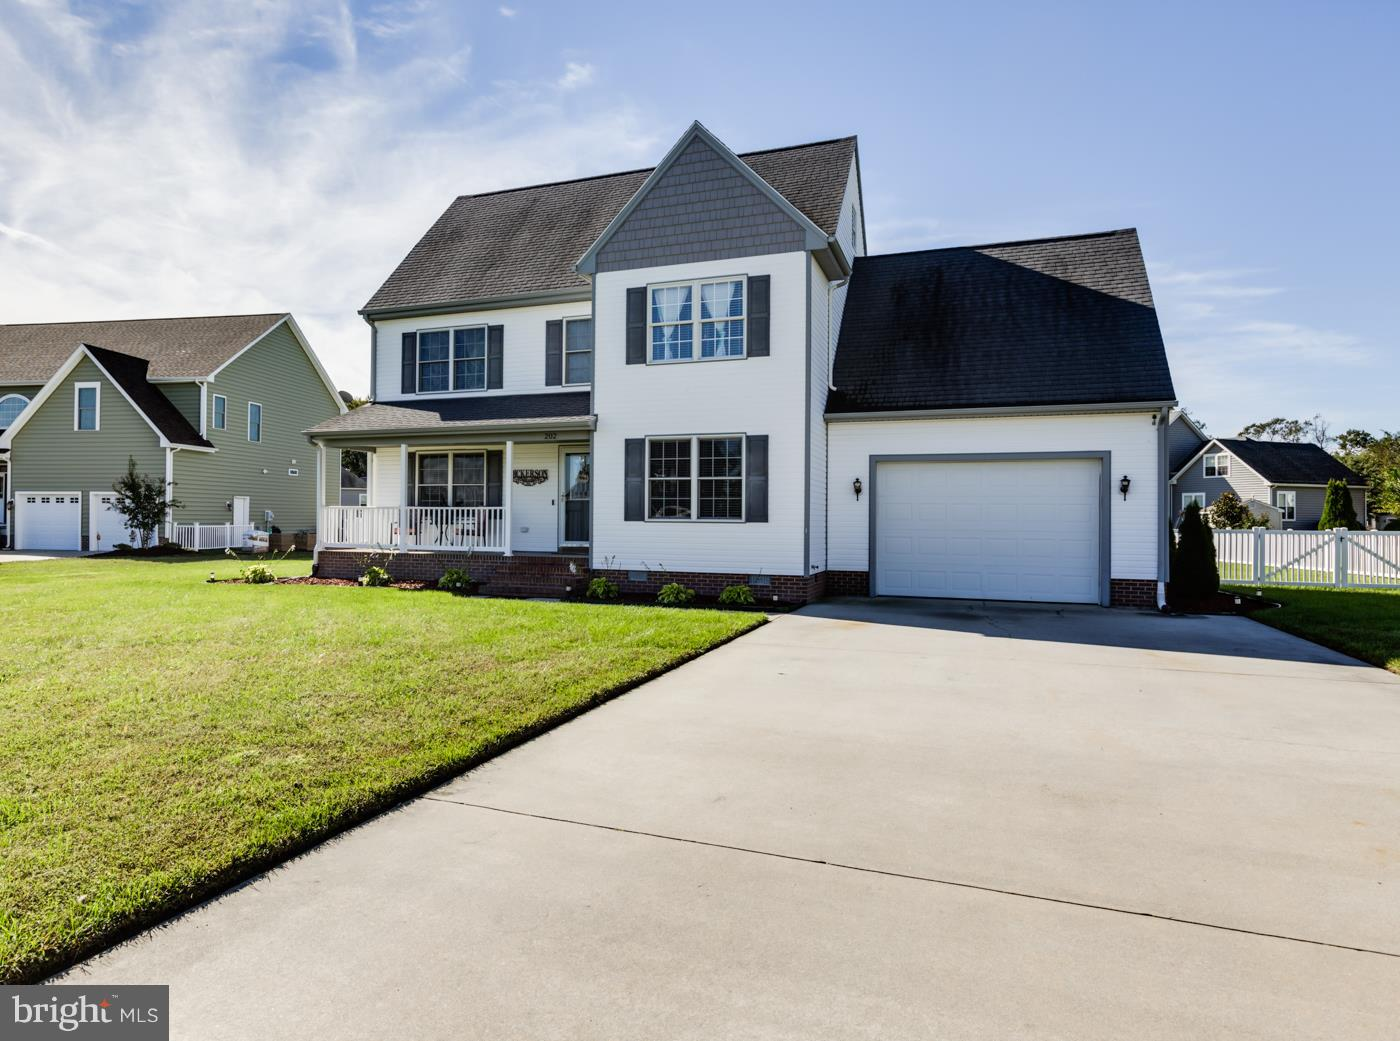 Other Residential for Sale at NONE AVAILABLE, 202 David Court Fruitland, Maryland 21826 United States